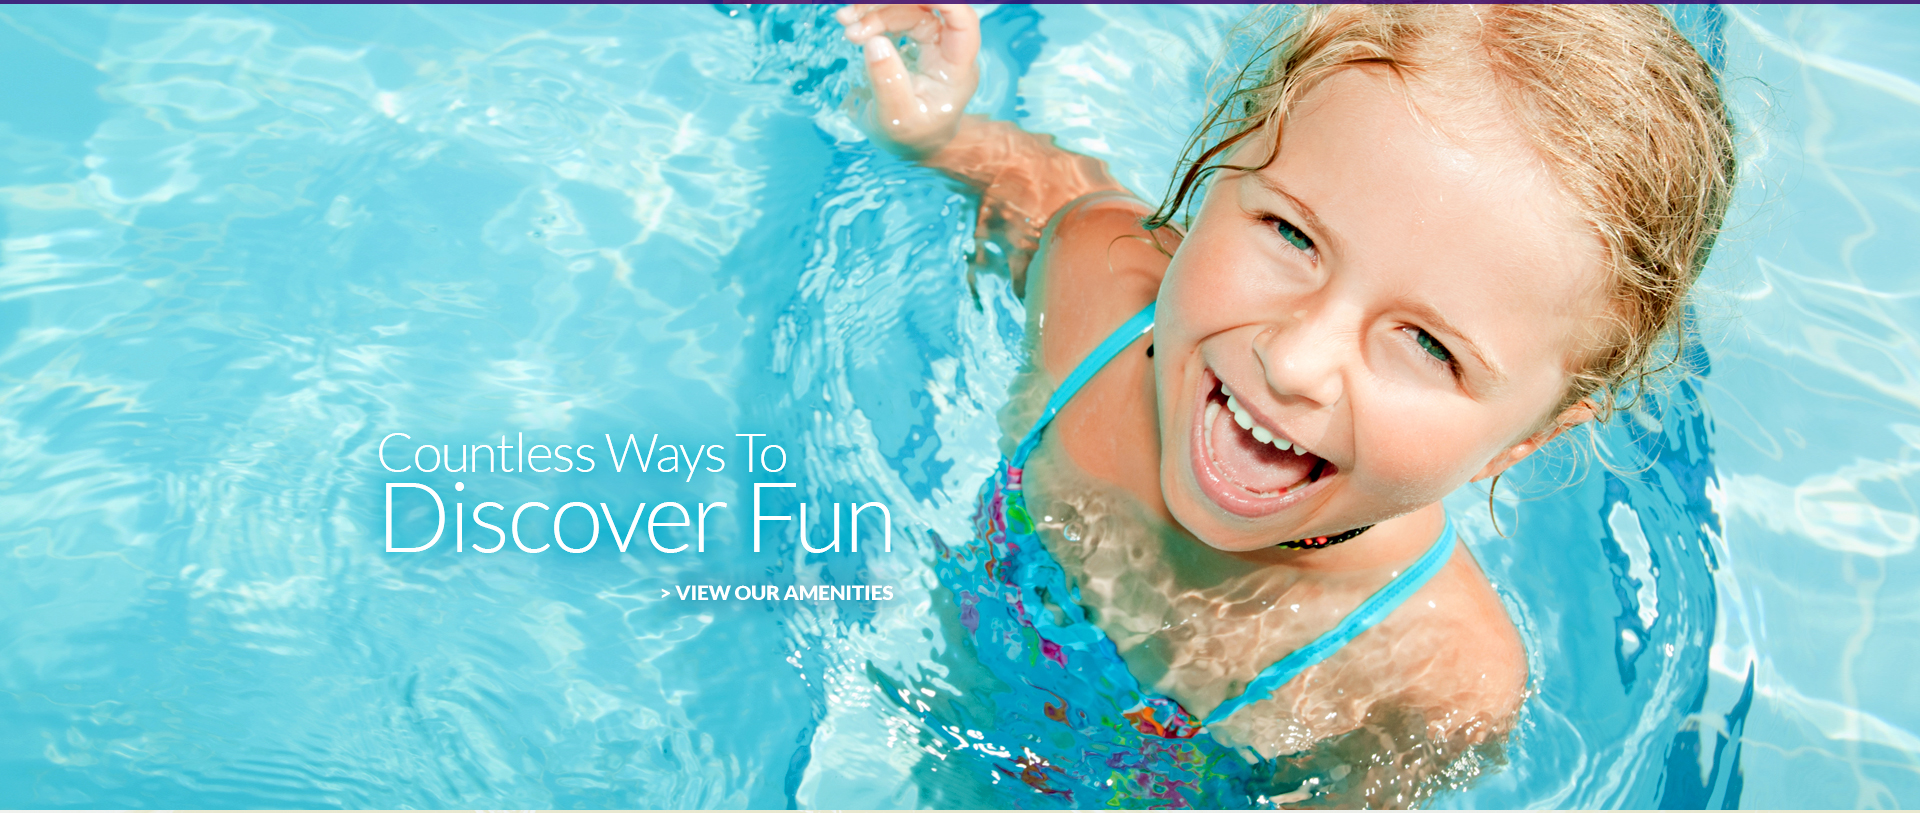 Countless way to Discover Fun. View our amenities.